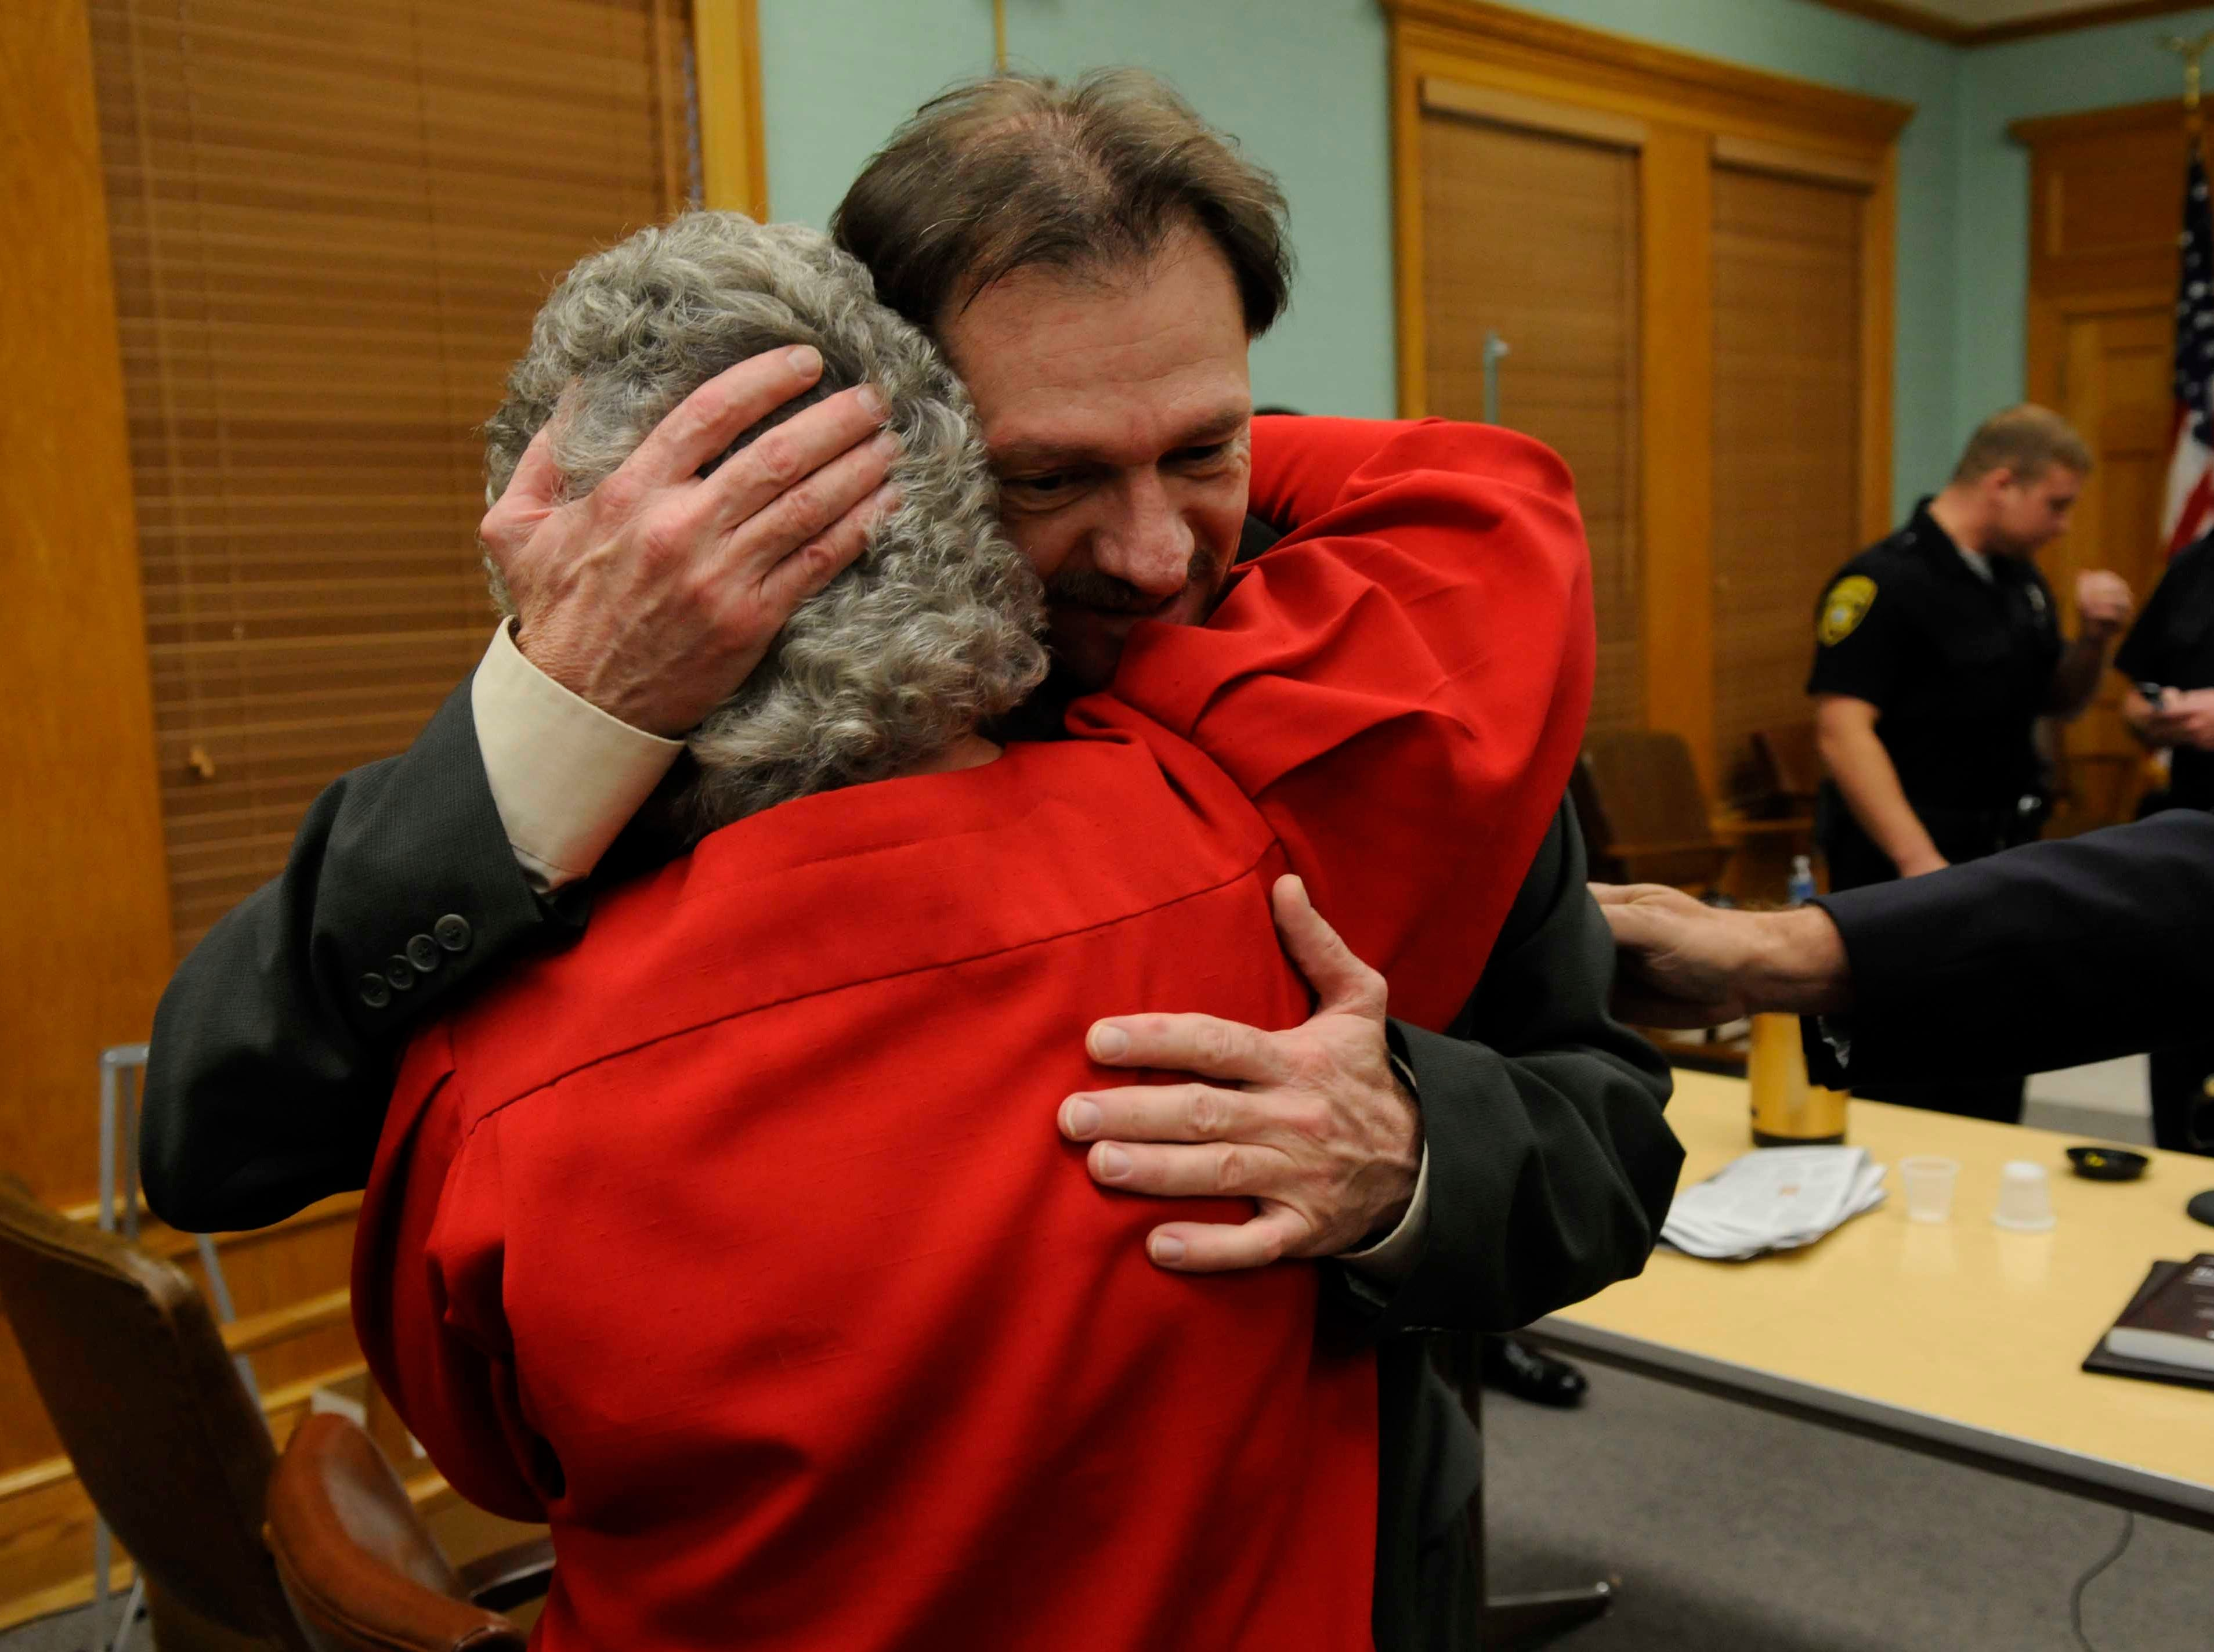 Leon Houston hugs his neighbor Ruby Lowe after he was found not guilty of double murder charges Thursday, Nov 12, 2009 in Roane County Criminal Court. Houston, 50, was cleared of responsibilty for the May 2006 shooting deaths of Roane County Sheriff's Office Deputy Bill Jones and his ride-along friend Mike Brown.